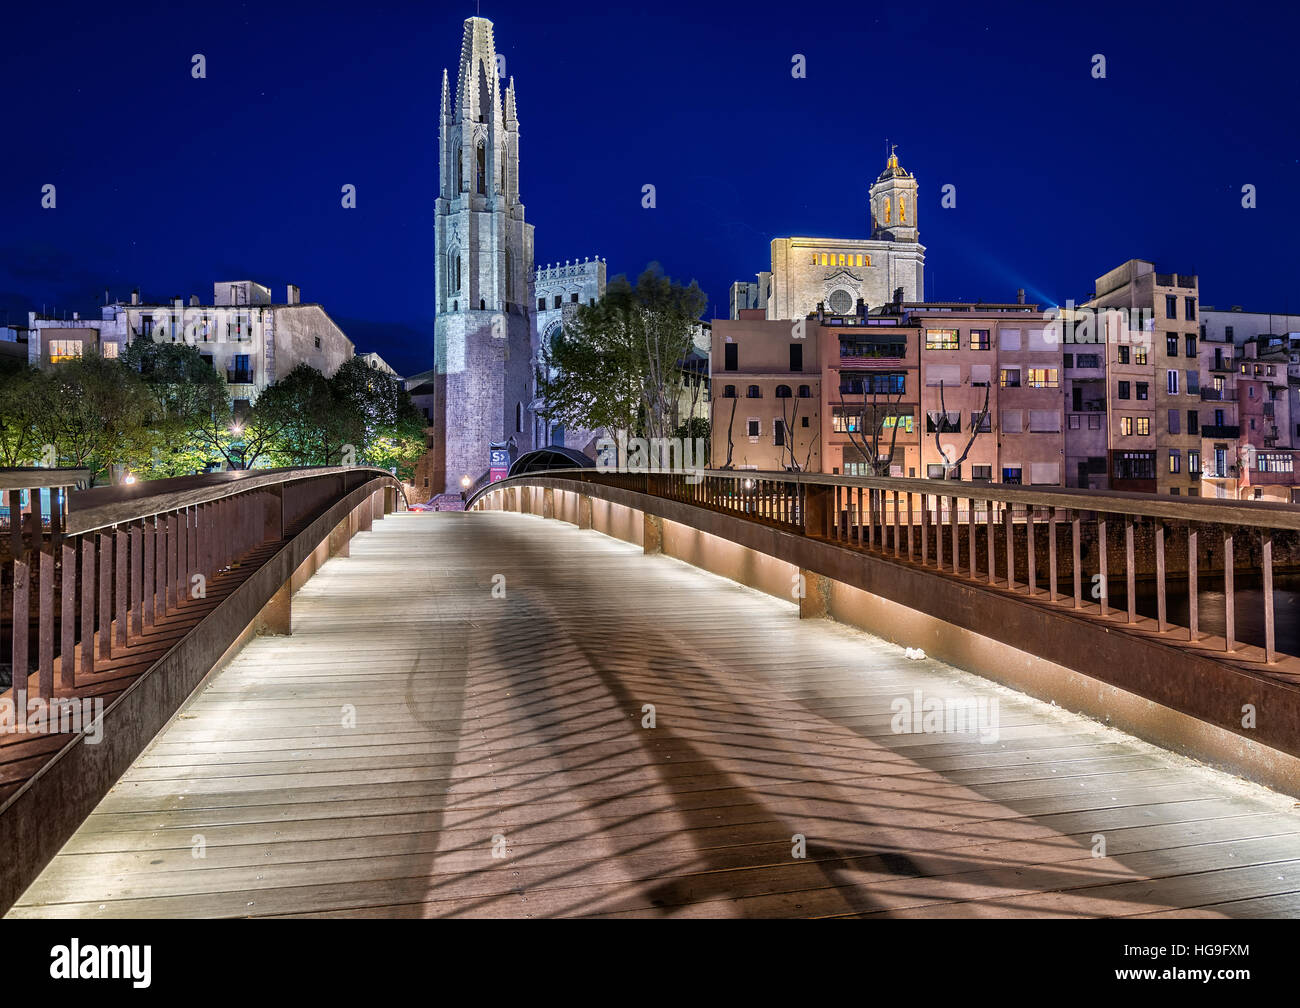 The Collegiate Church of Sant Feliu, Girona, Catalonia, Spain Stock Photo